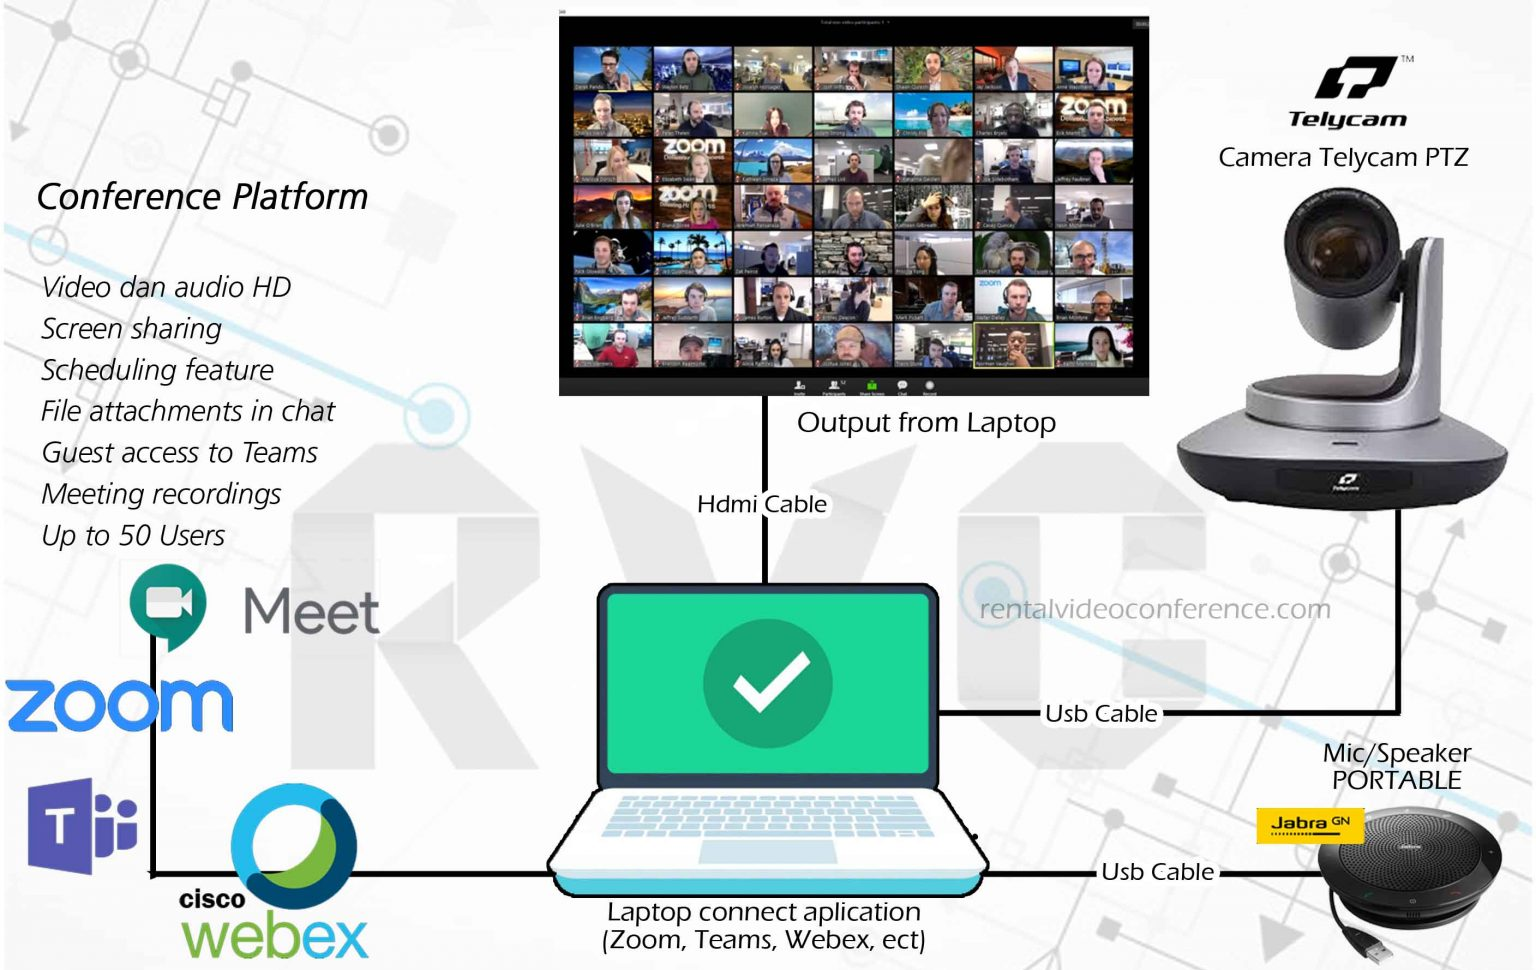 Harga Sewa Video Conference Cempaka Putih